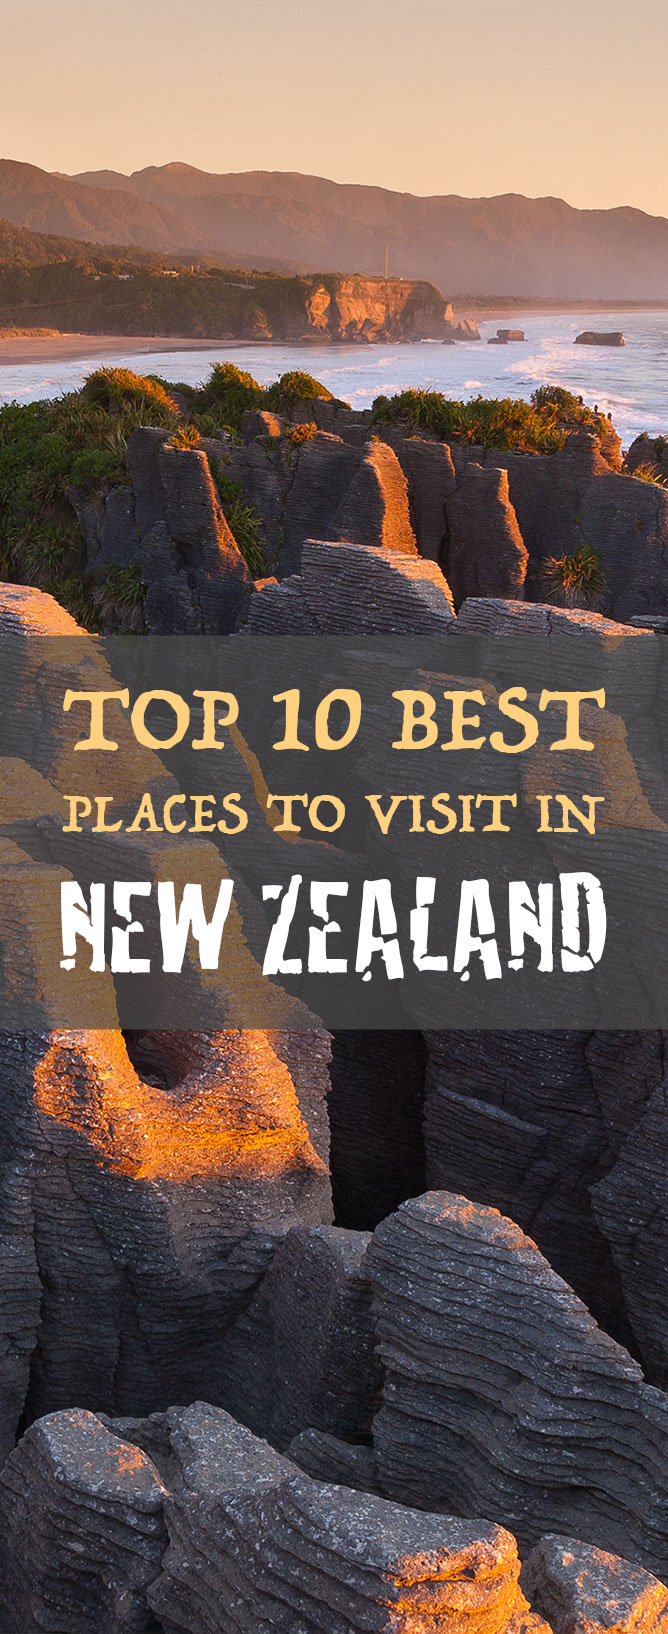 Top 10 Best Places To Visit In New Zealand // www.newzealandbyroad.com